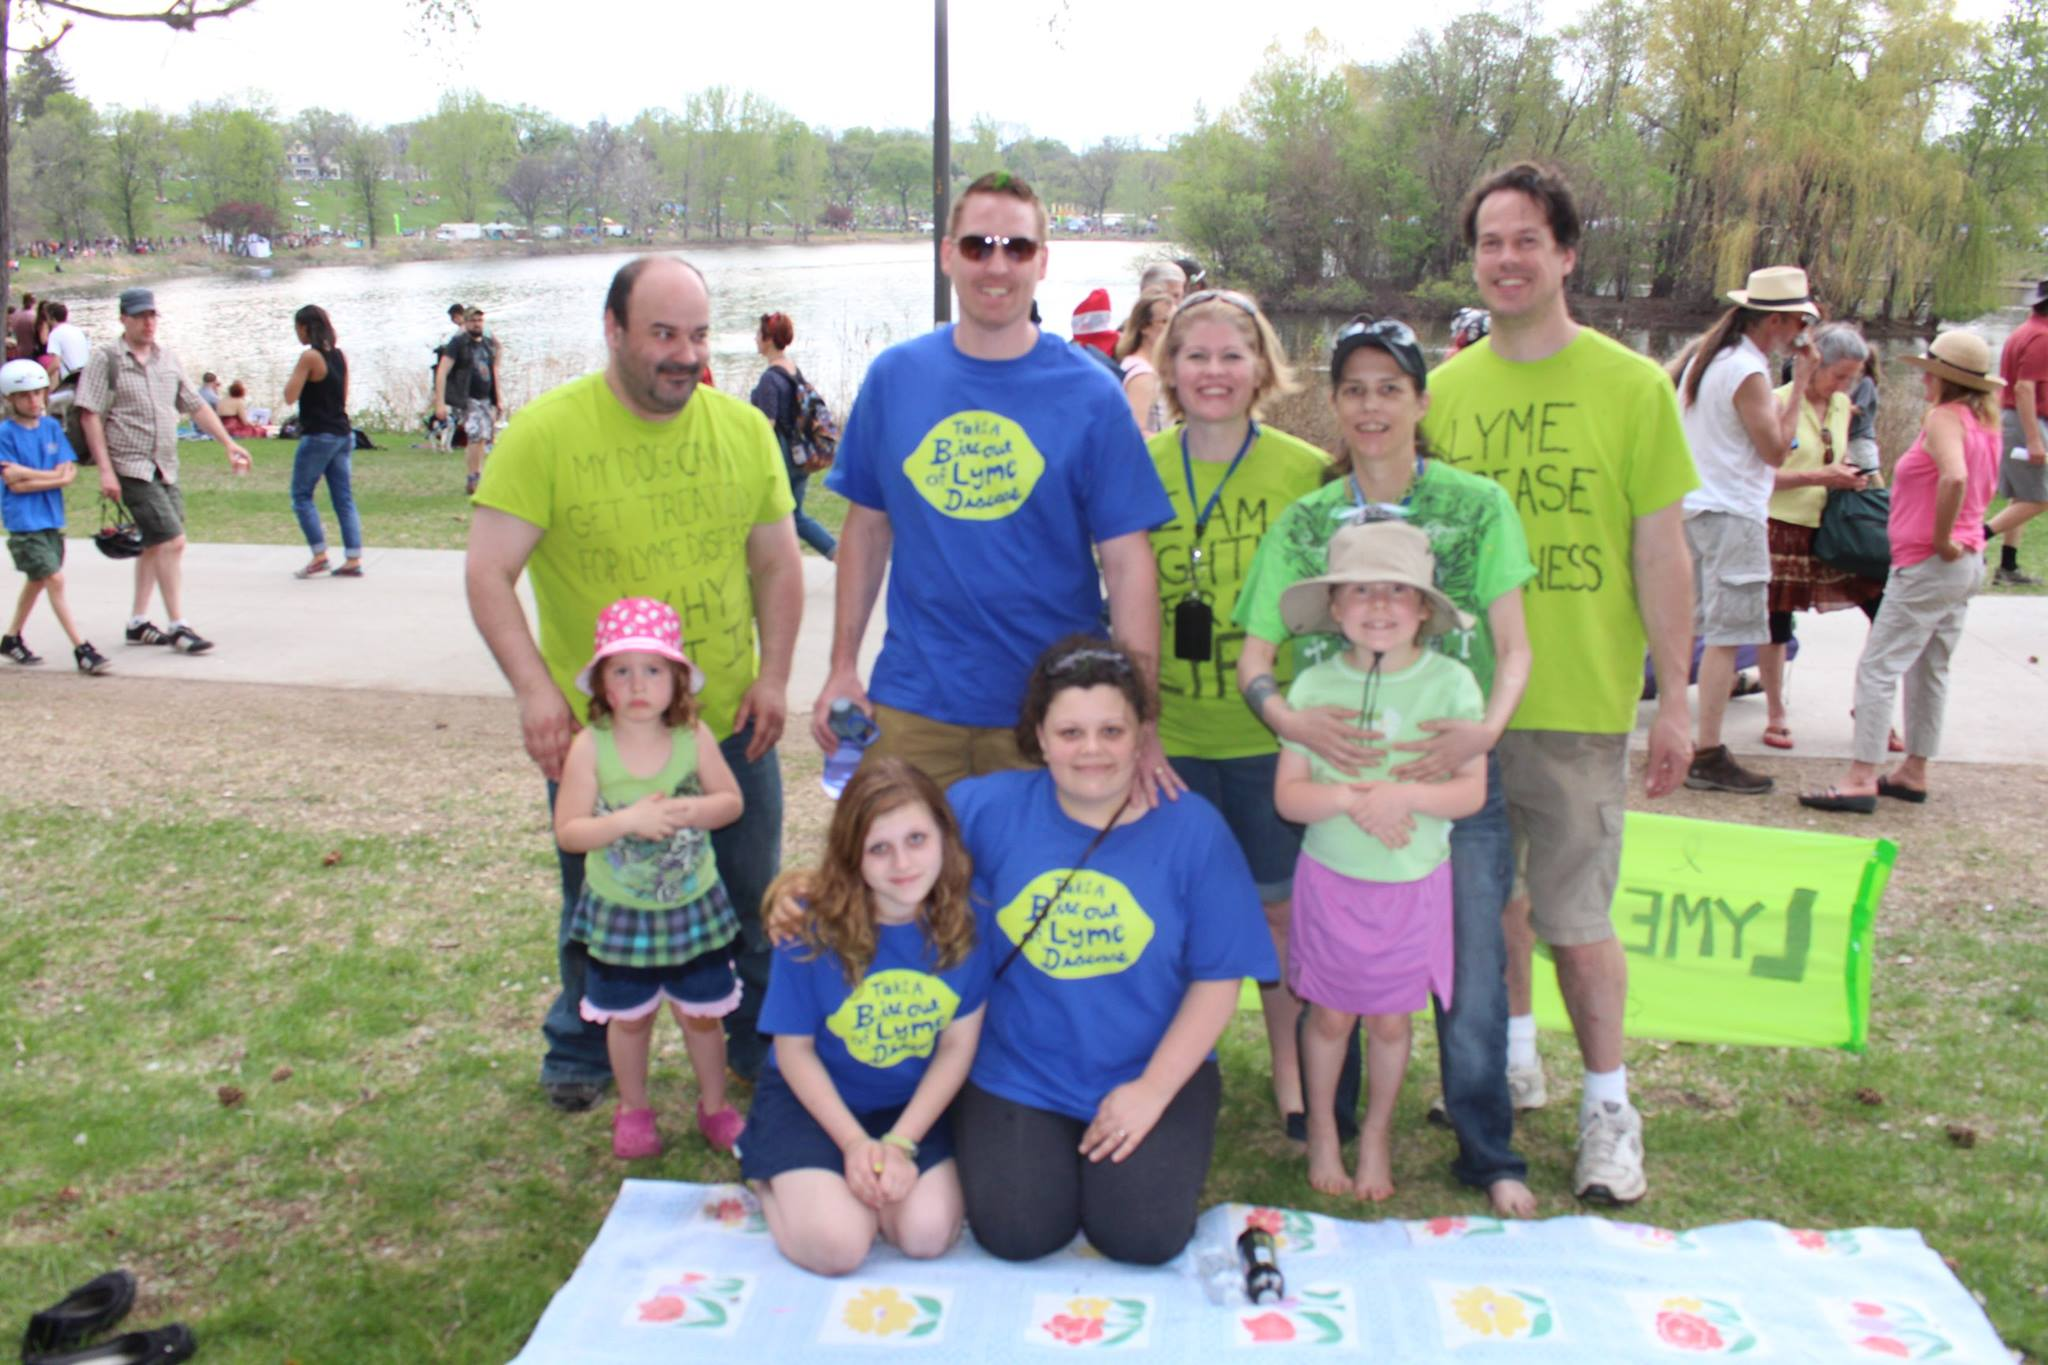 Vicki and Kara:  Lyme Disease Awareness at Minneapolis May Day Festival